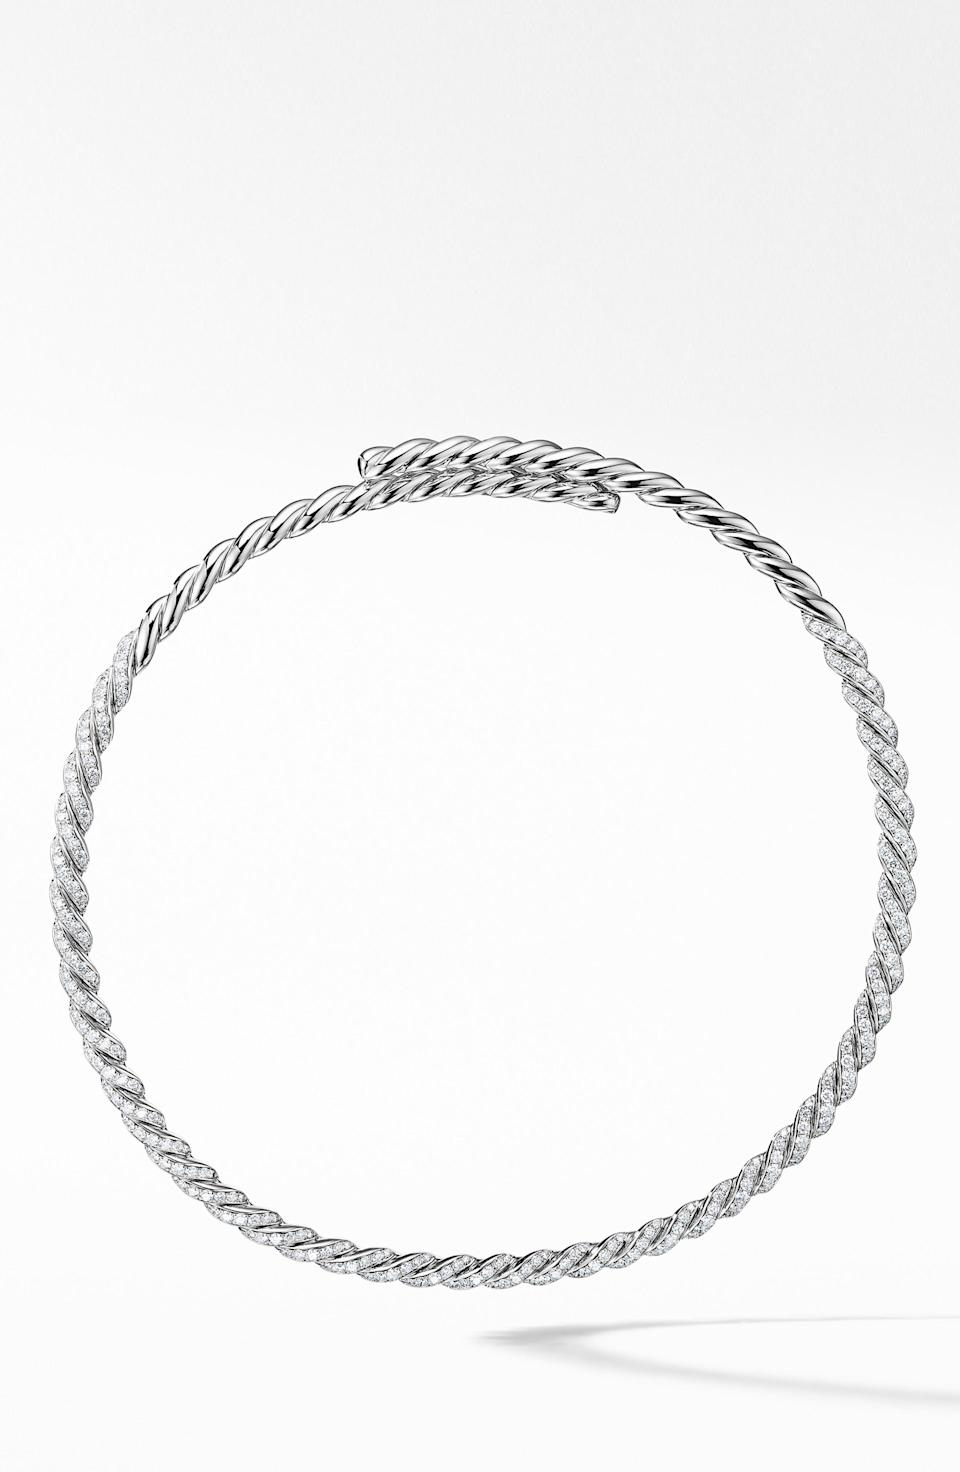 """<p><strong>DAVID YURMAN</strong></p><p>nordstrom.com</p><p><strong>$22000.00</strong></p><p><a href=""""https://go.redirectingat.com?id=74968X1596630&url=https%3A%2F%2Fshop.nordstrom.com%2Fs%2Fdavid-yurman-pave-flexible-18k-gold-necklace-with-diamonds%2F5030350&sref=https%3A%2F%2Fwww.townandcountrymag.com%2Fstyle%2Fjewelry-and-watches%2Fg37368162%2Ffine-jewelry-brands-at-nordstrom%2F"""" rel=""""nofollow noopener"""" target=""""_blank"""" data-ylk=""""slk:Shop Now"""" class=""""link rapid-noclick-resp"""">Shop Now</a></p><p>The iconic New York jeweler is known for its signature design: the cable, which is woven through all of Yurman collections.</p>"""